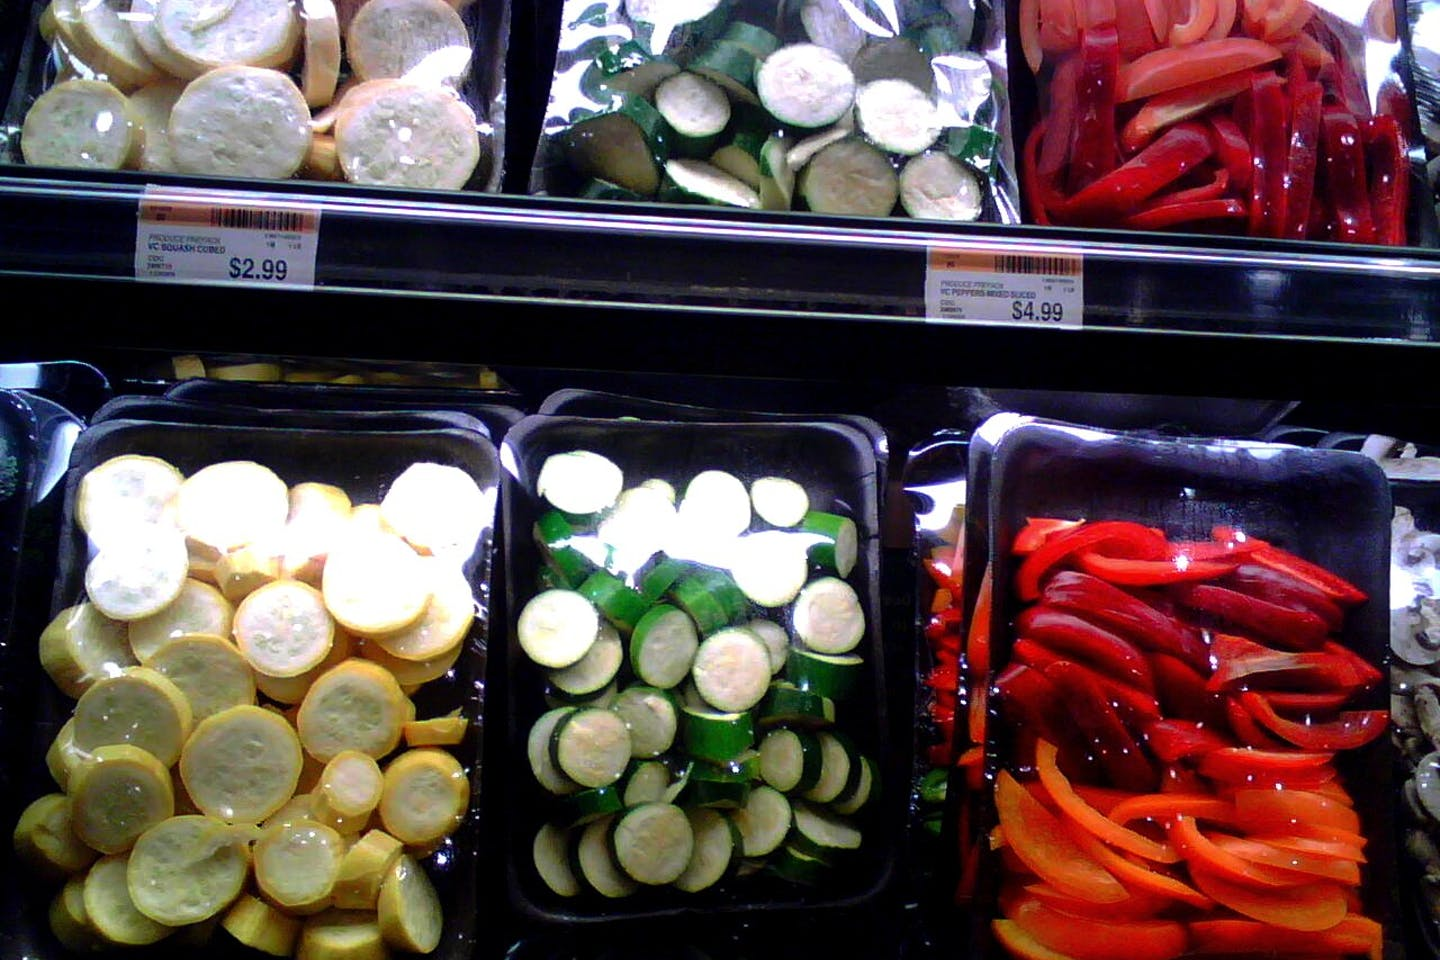 Presliced vegetables in plastic wrapping on supermarket shelves